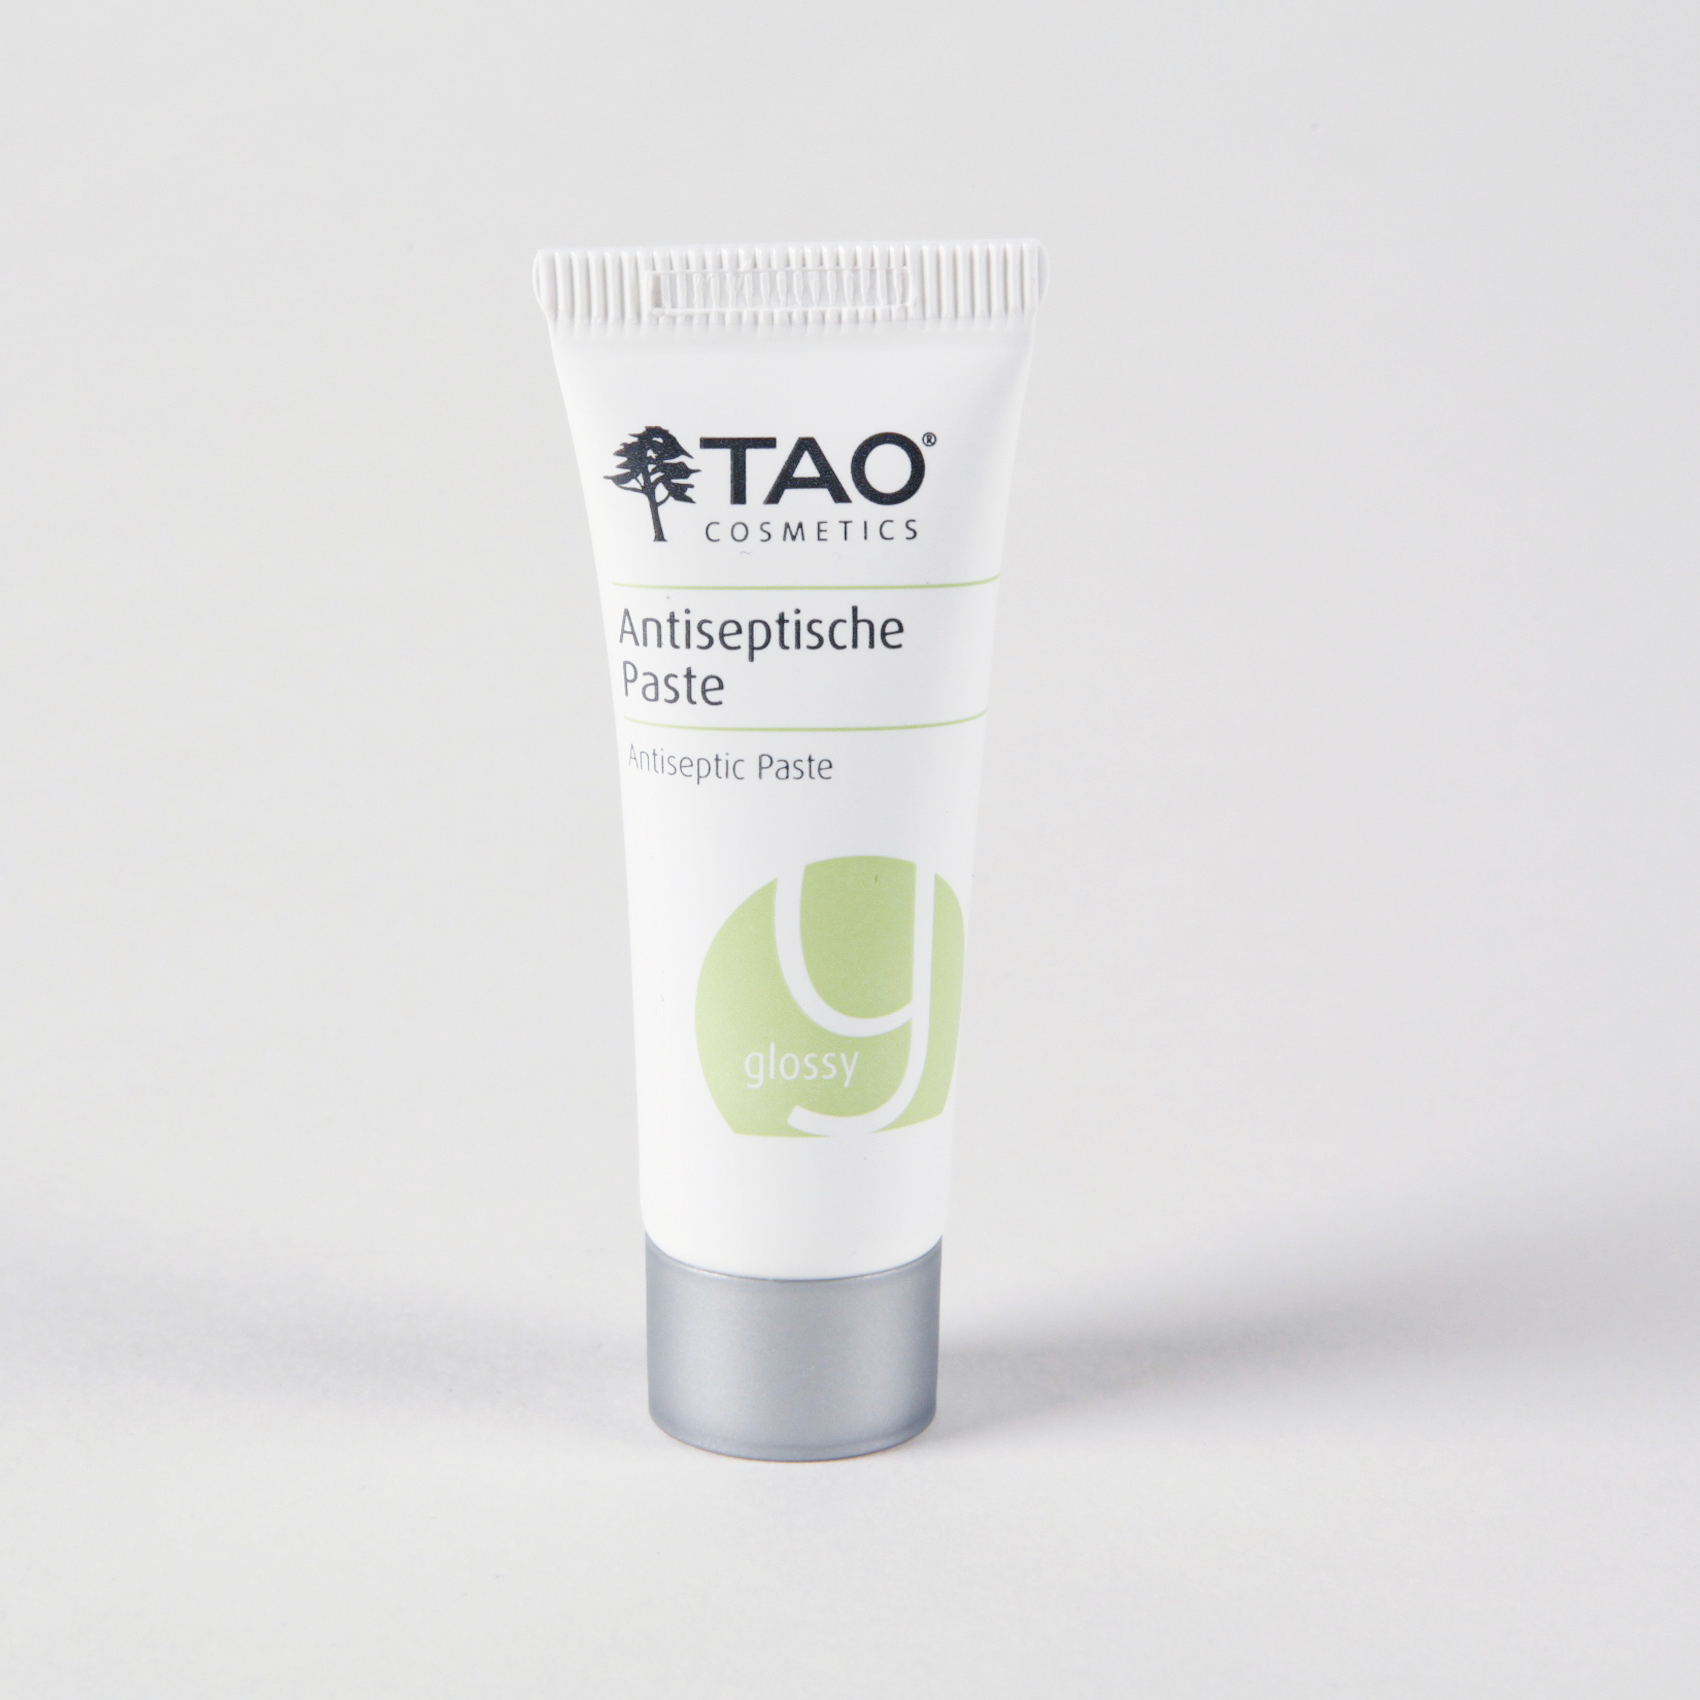 Tube Antiseptische Paste von Tao Cosmetics